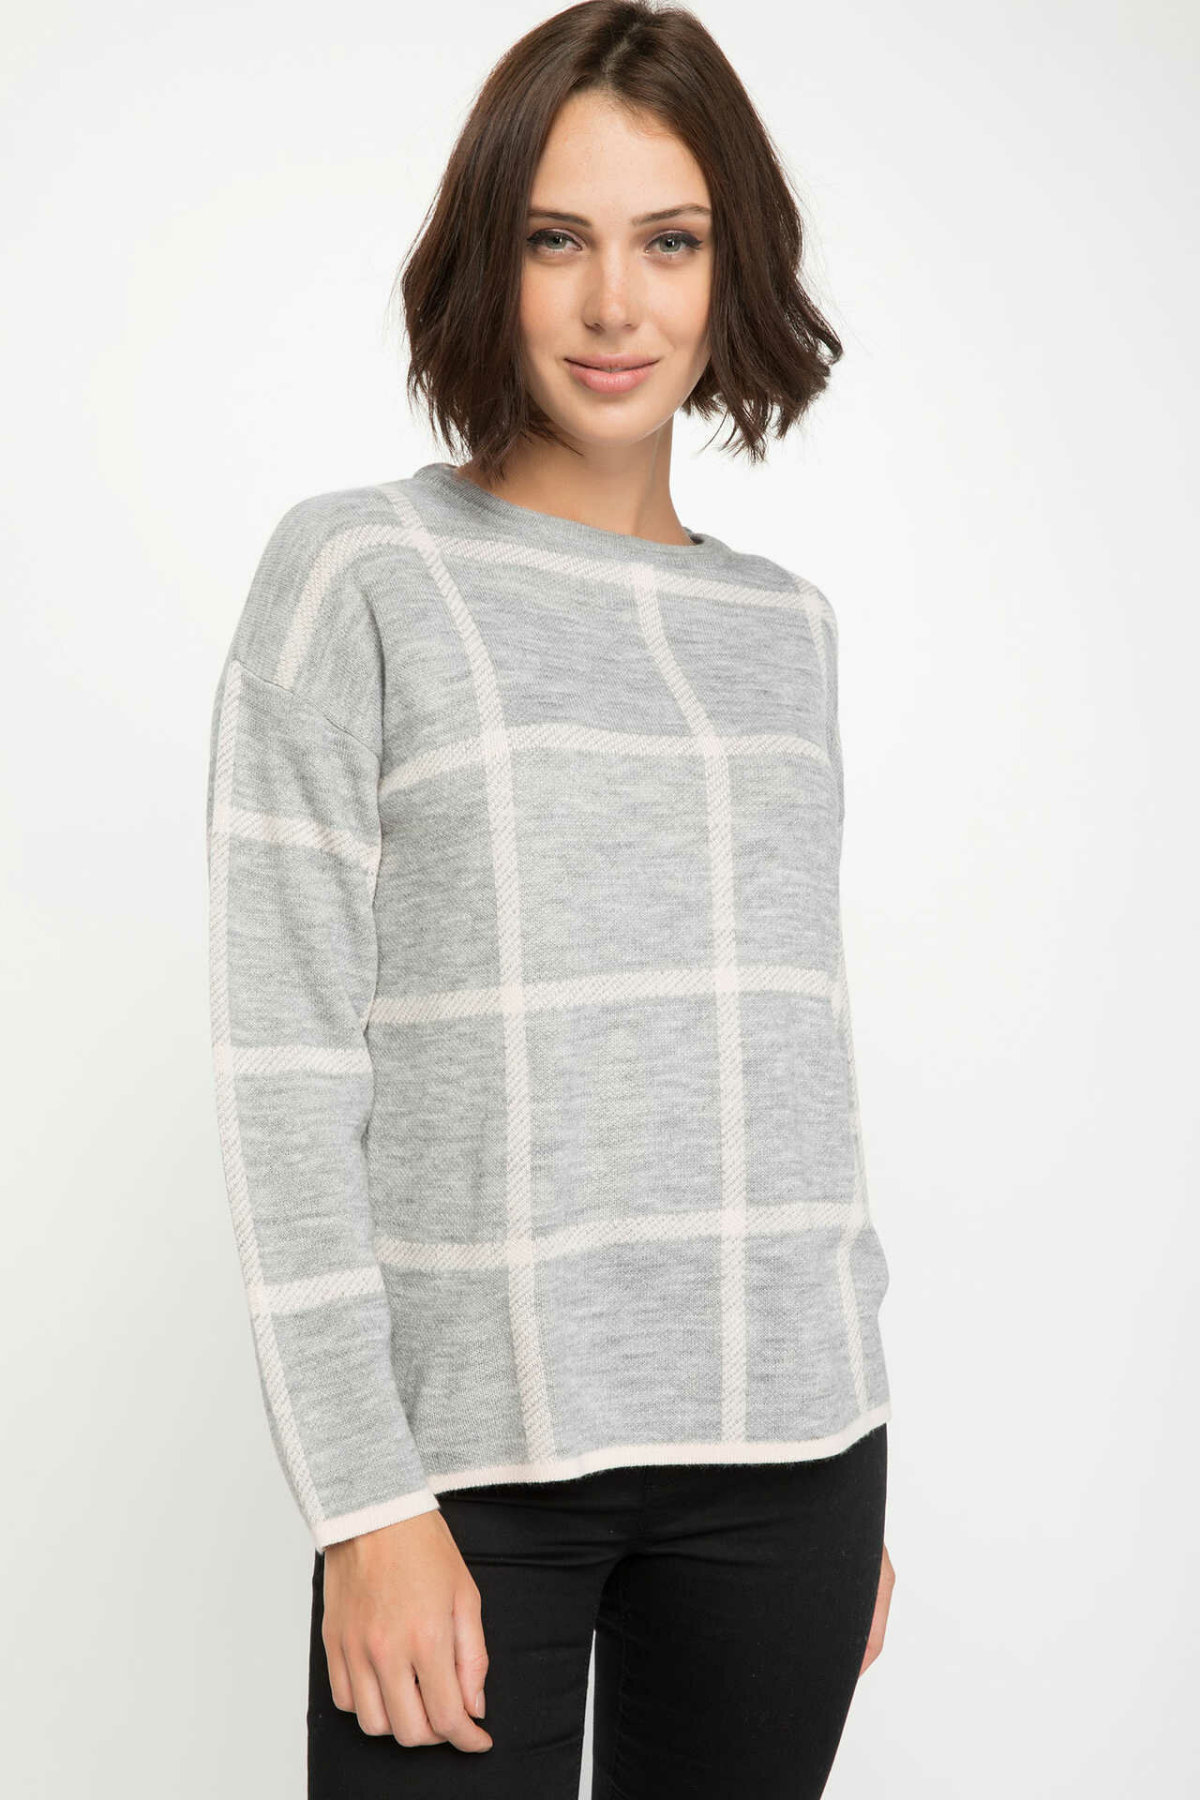 DeFacto Women Fashion Loose Plaid O-neck Knitted Pullovers Casual Long Sleeves Women Tops Autumn New -J2770AZ18WN